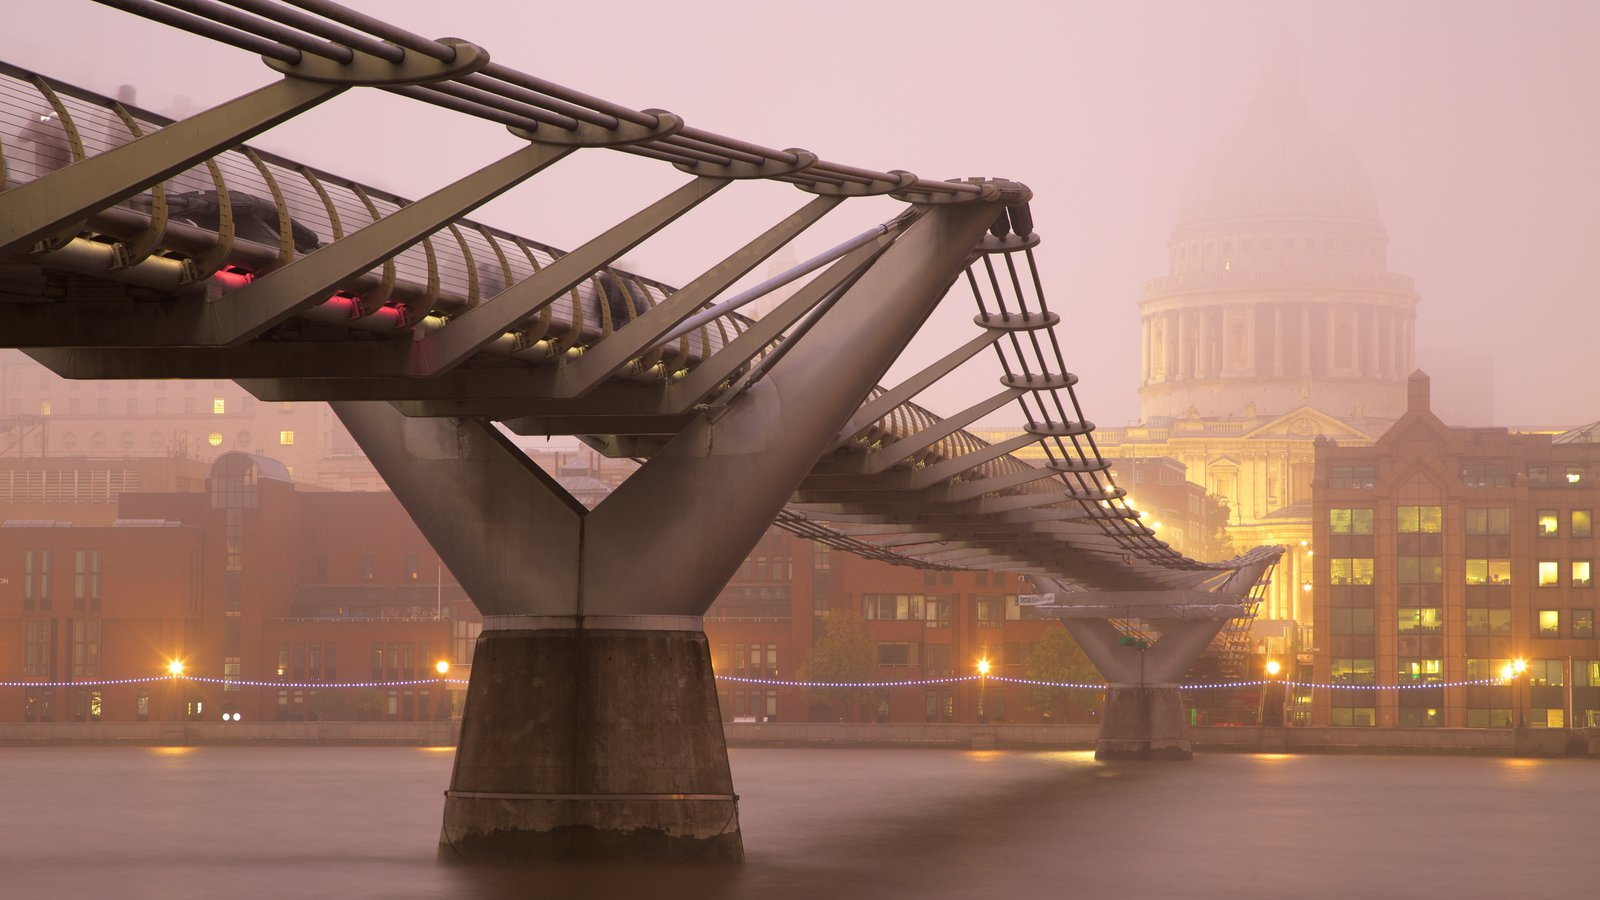 London Millennium Footbridge showing a river or creek, mist or fog and a city